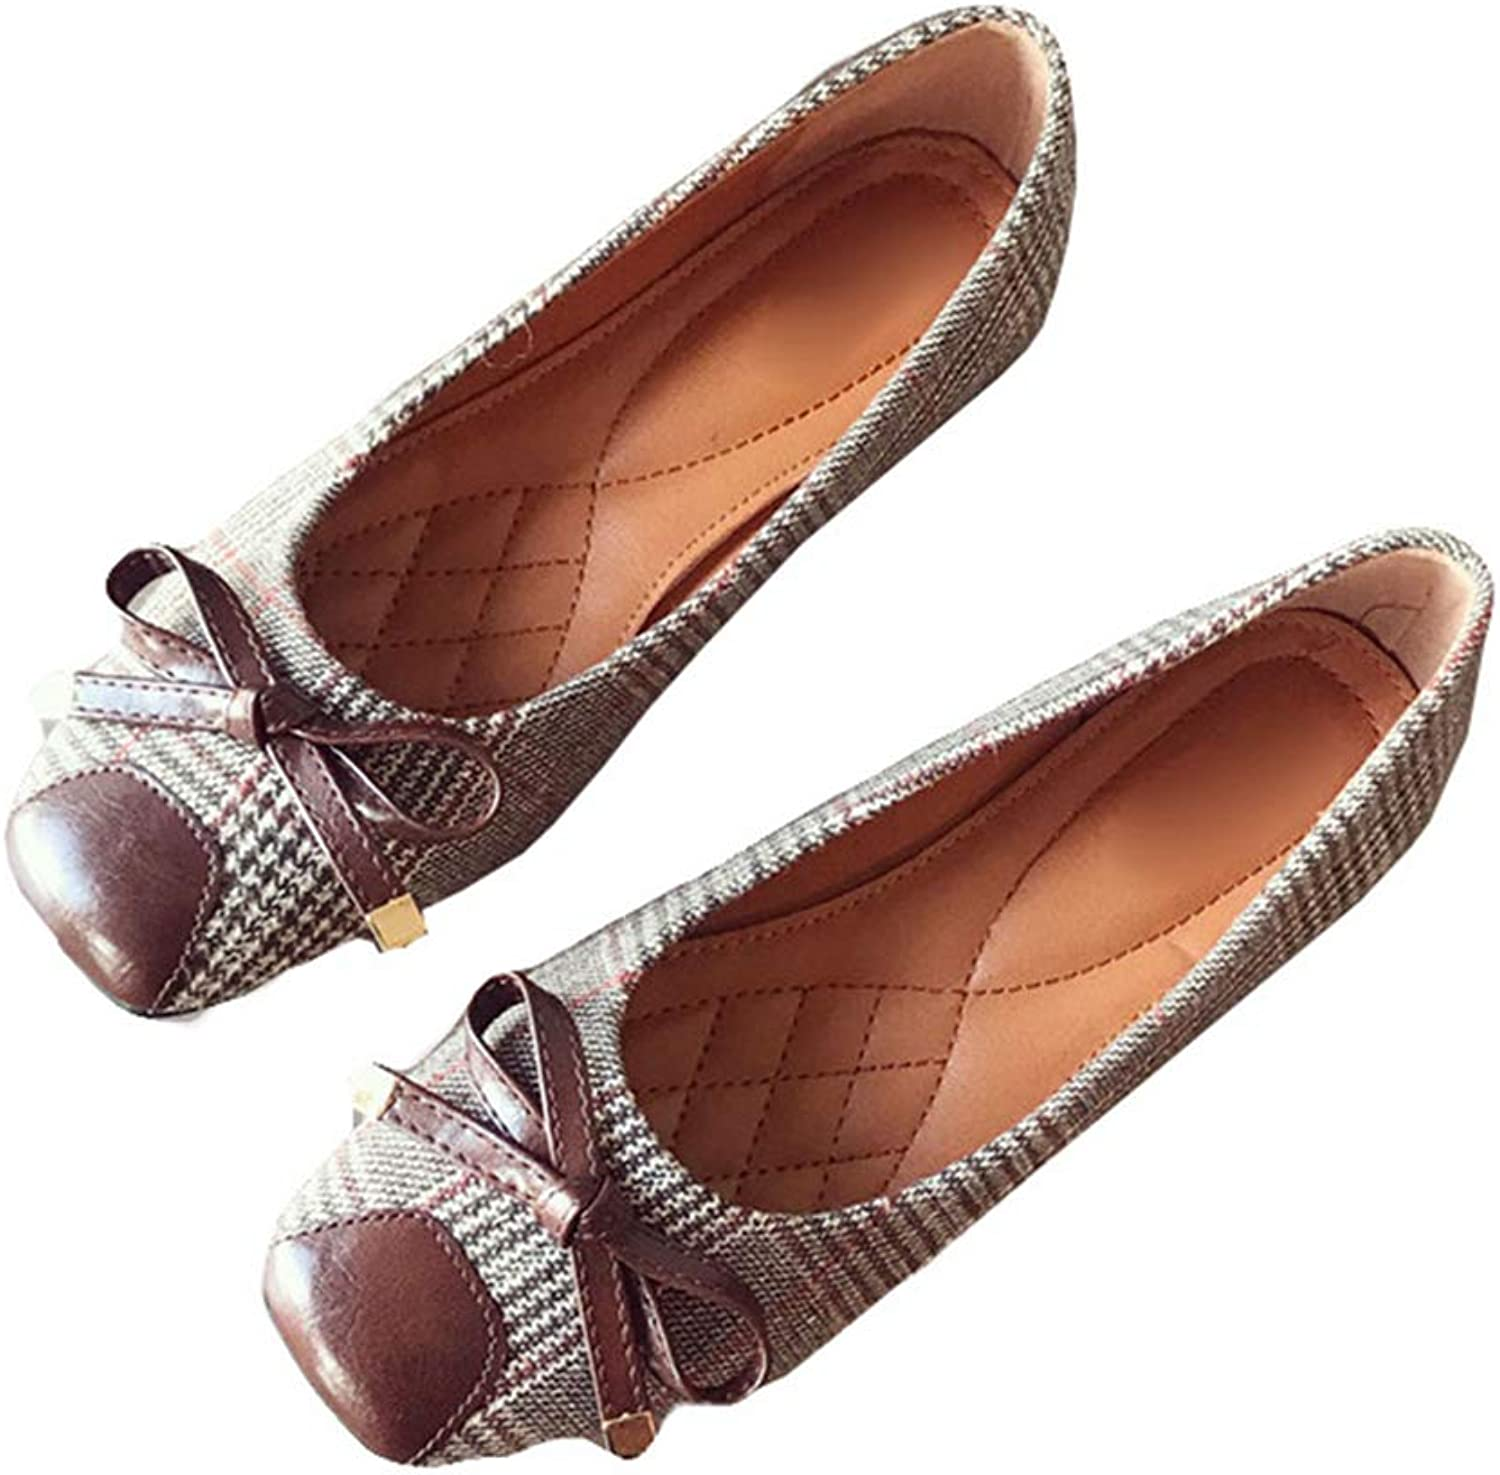 August Jim Women's Flat shoes Check Gingham Slip-on Comfort Bowknot Ballet Flat shoes